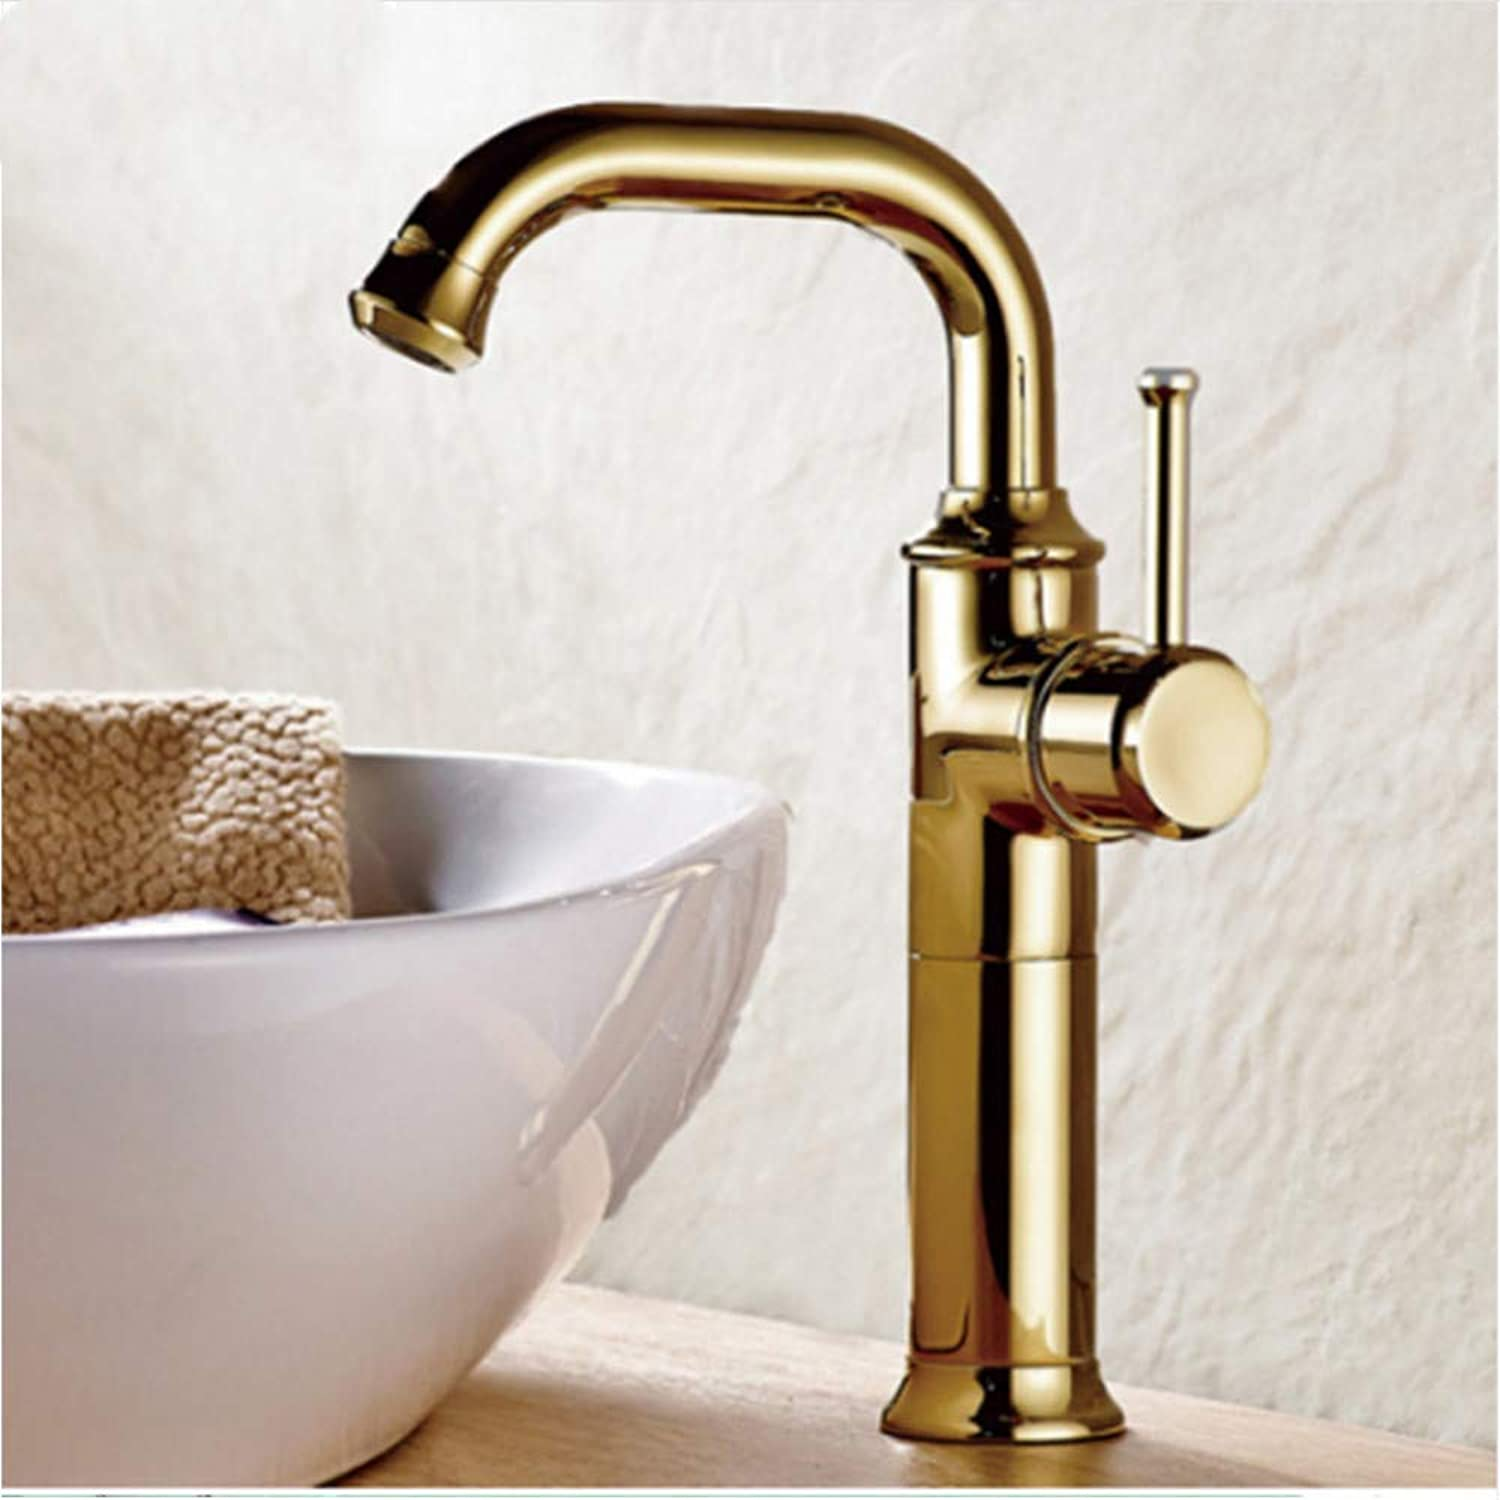 LLLYZZ Europe Style gold color Bathroom Basin Faucet Copper Material redatable Single Handle Mixer for Cold and hot Water